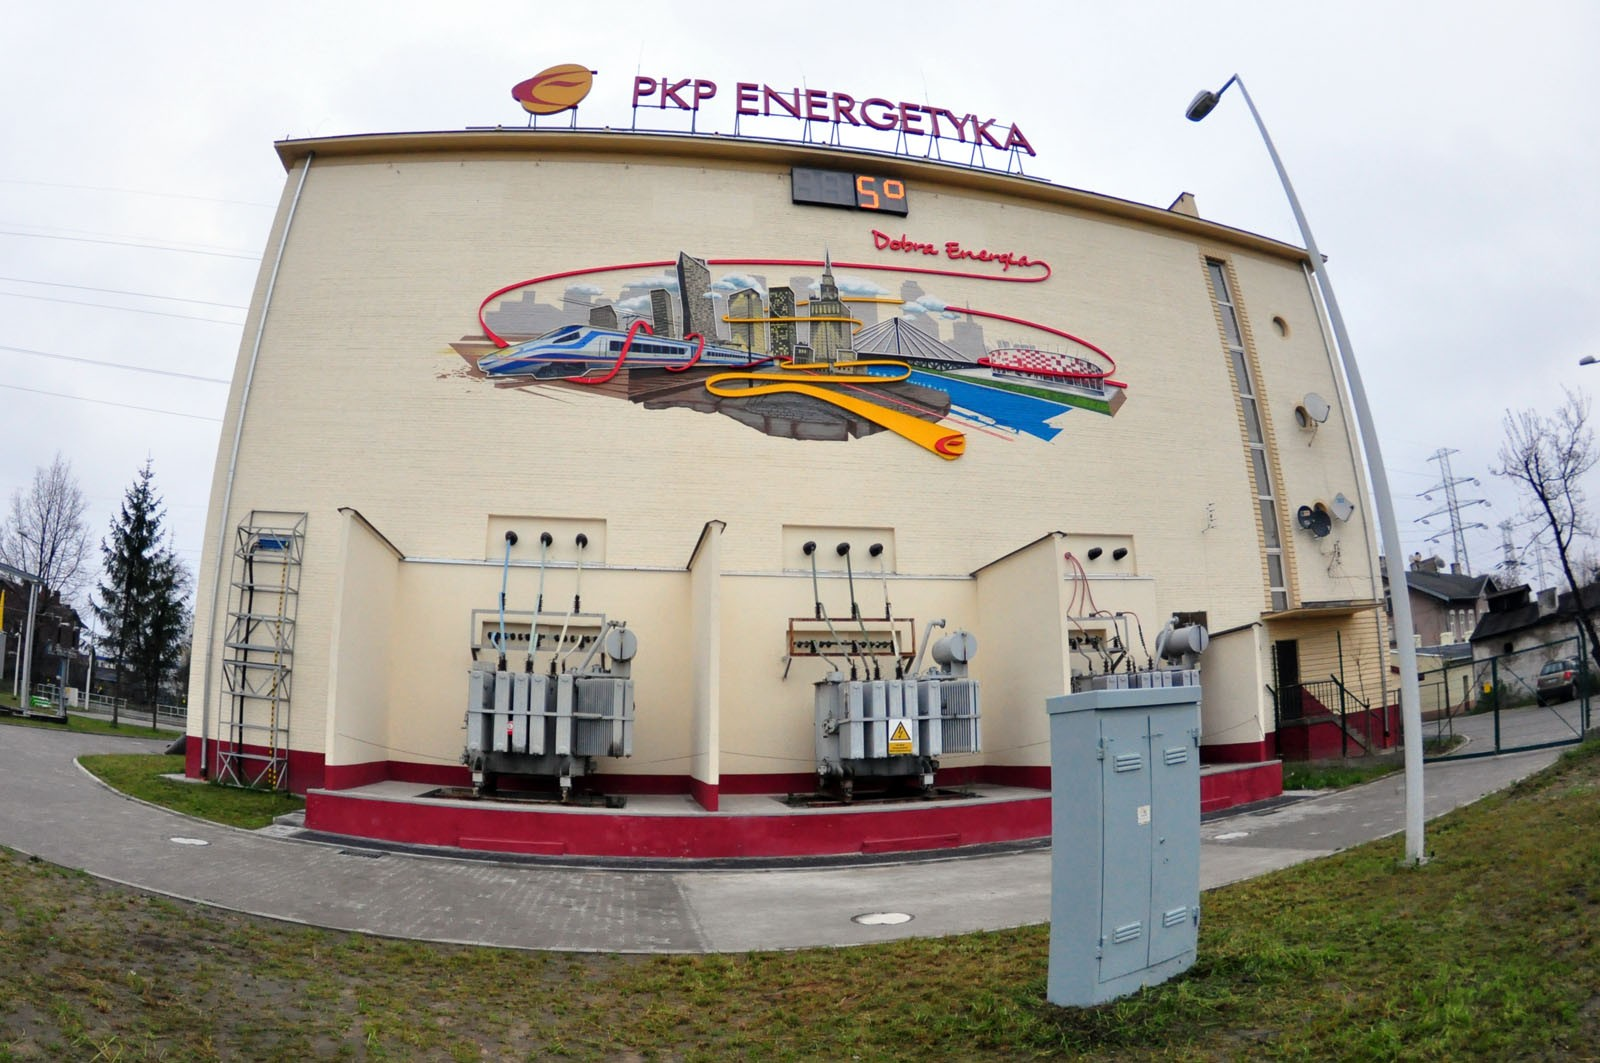 PKP Energetyka S.A. Good Energy mural in Warsaw | Good energy | Portfolio